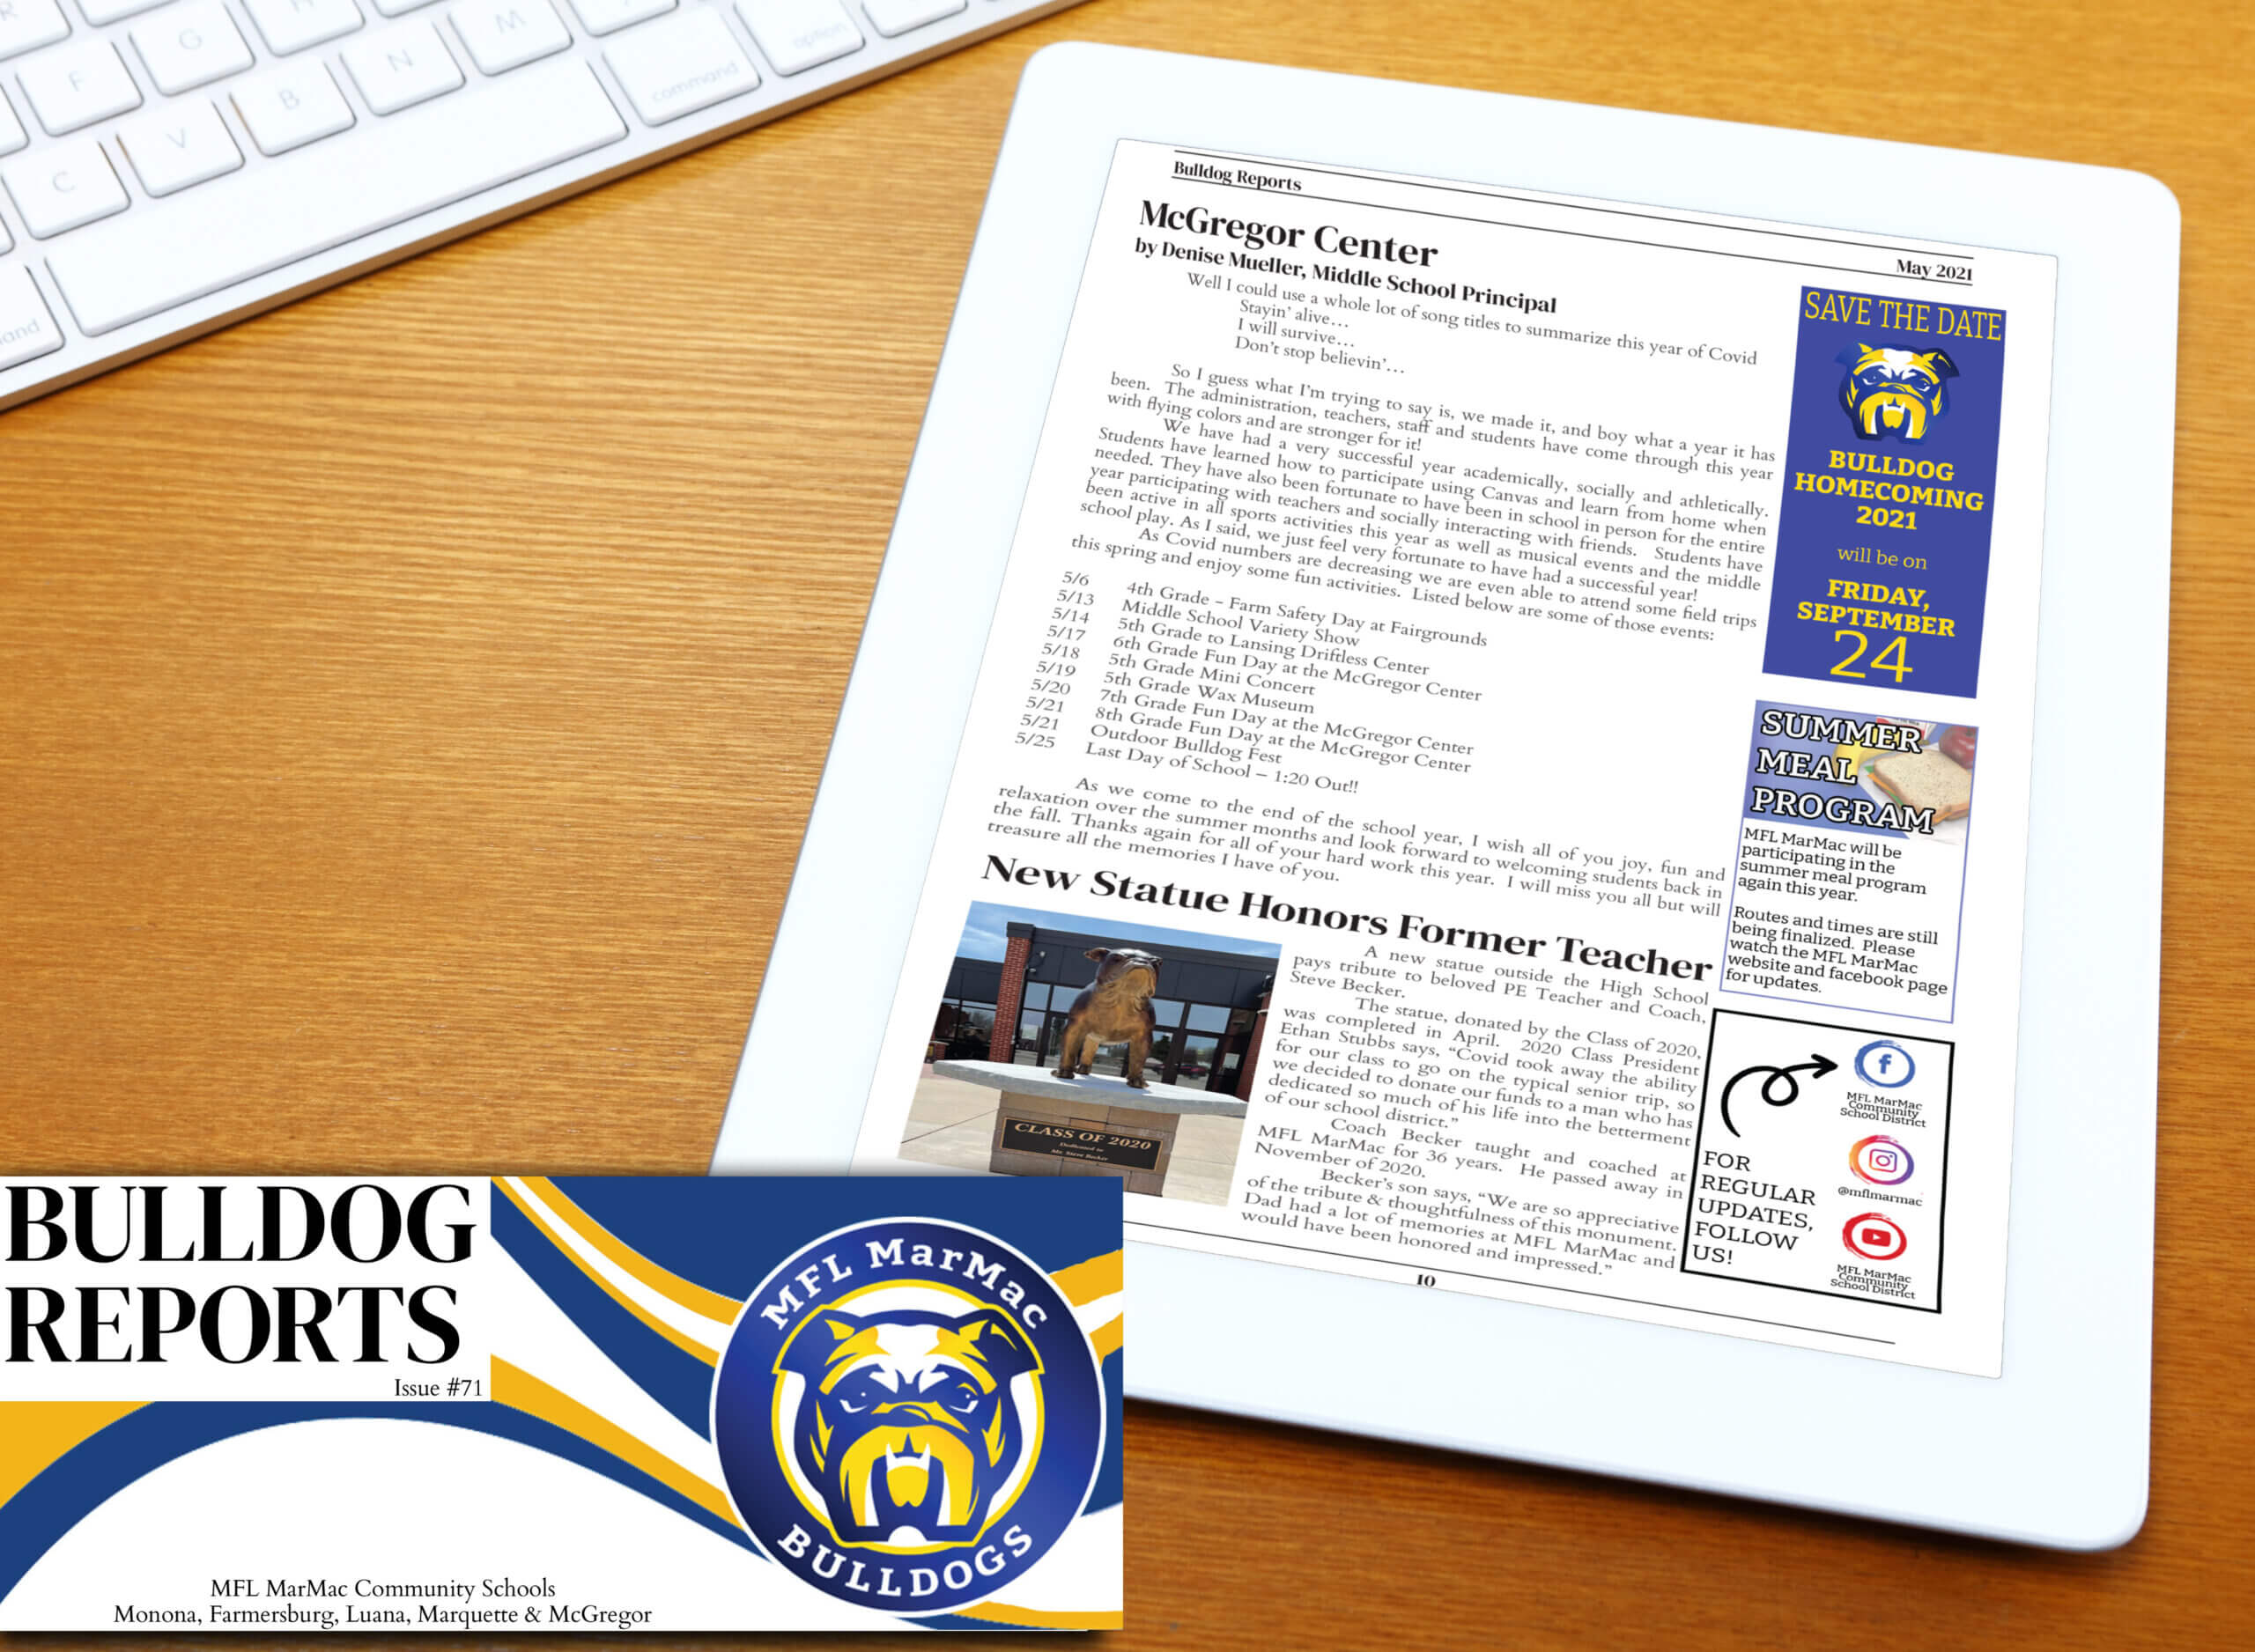 A page from the May 2021 newsletter sitting on a desk